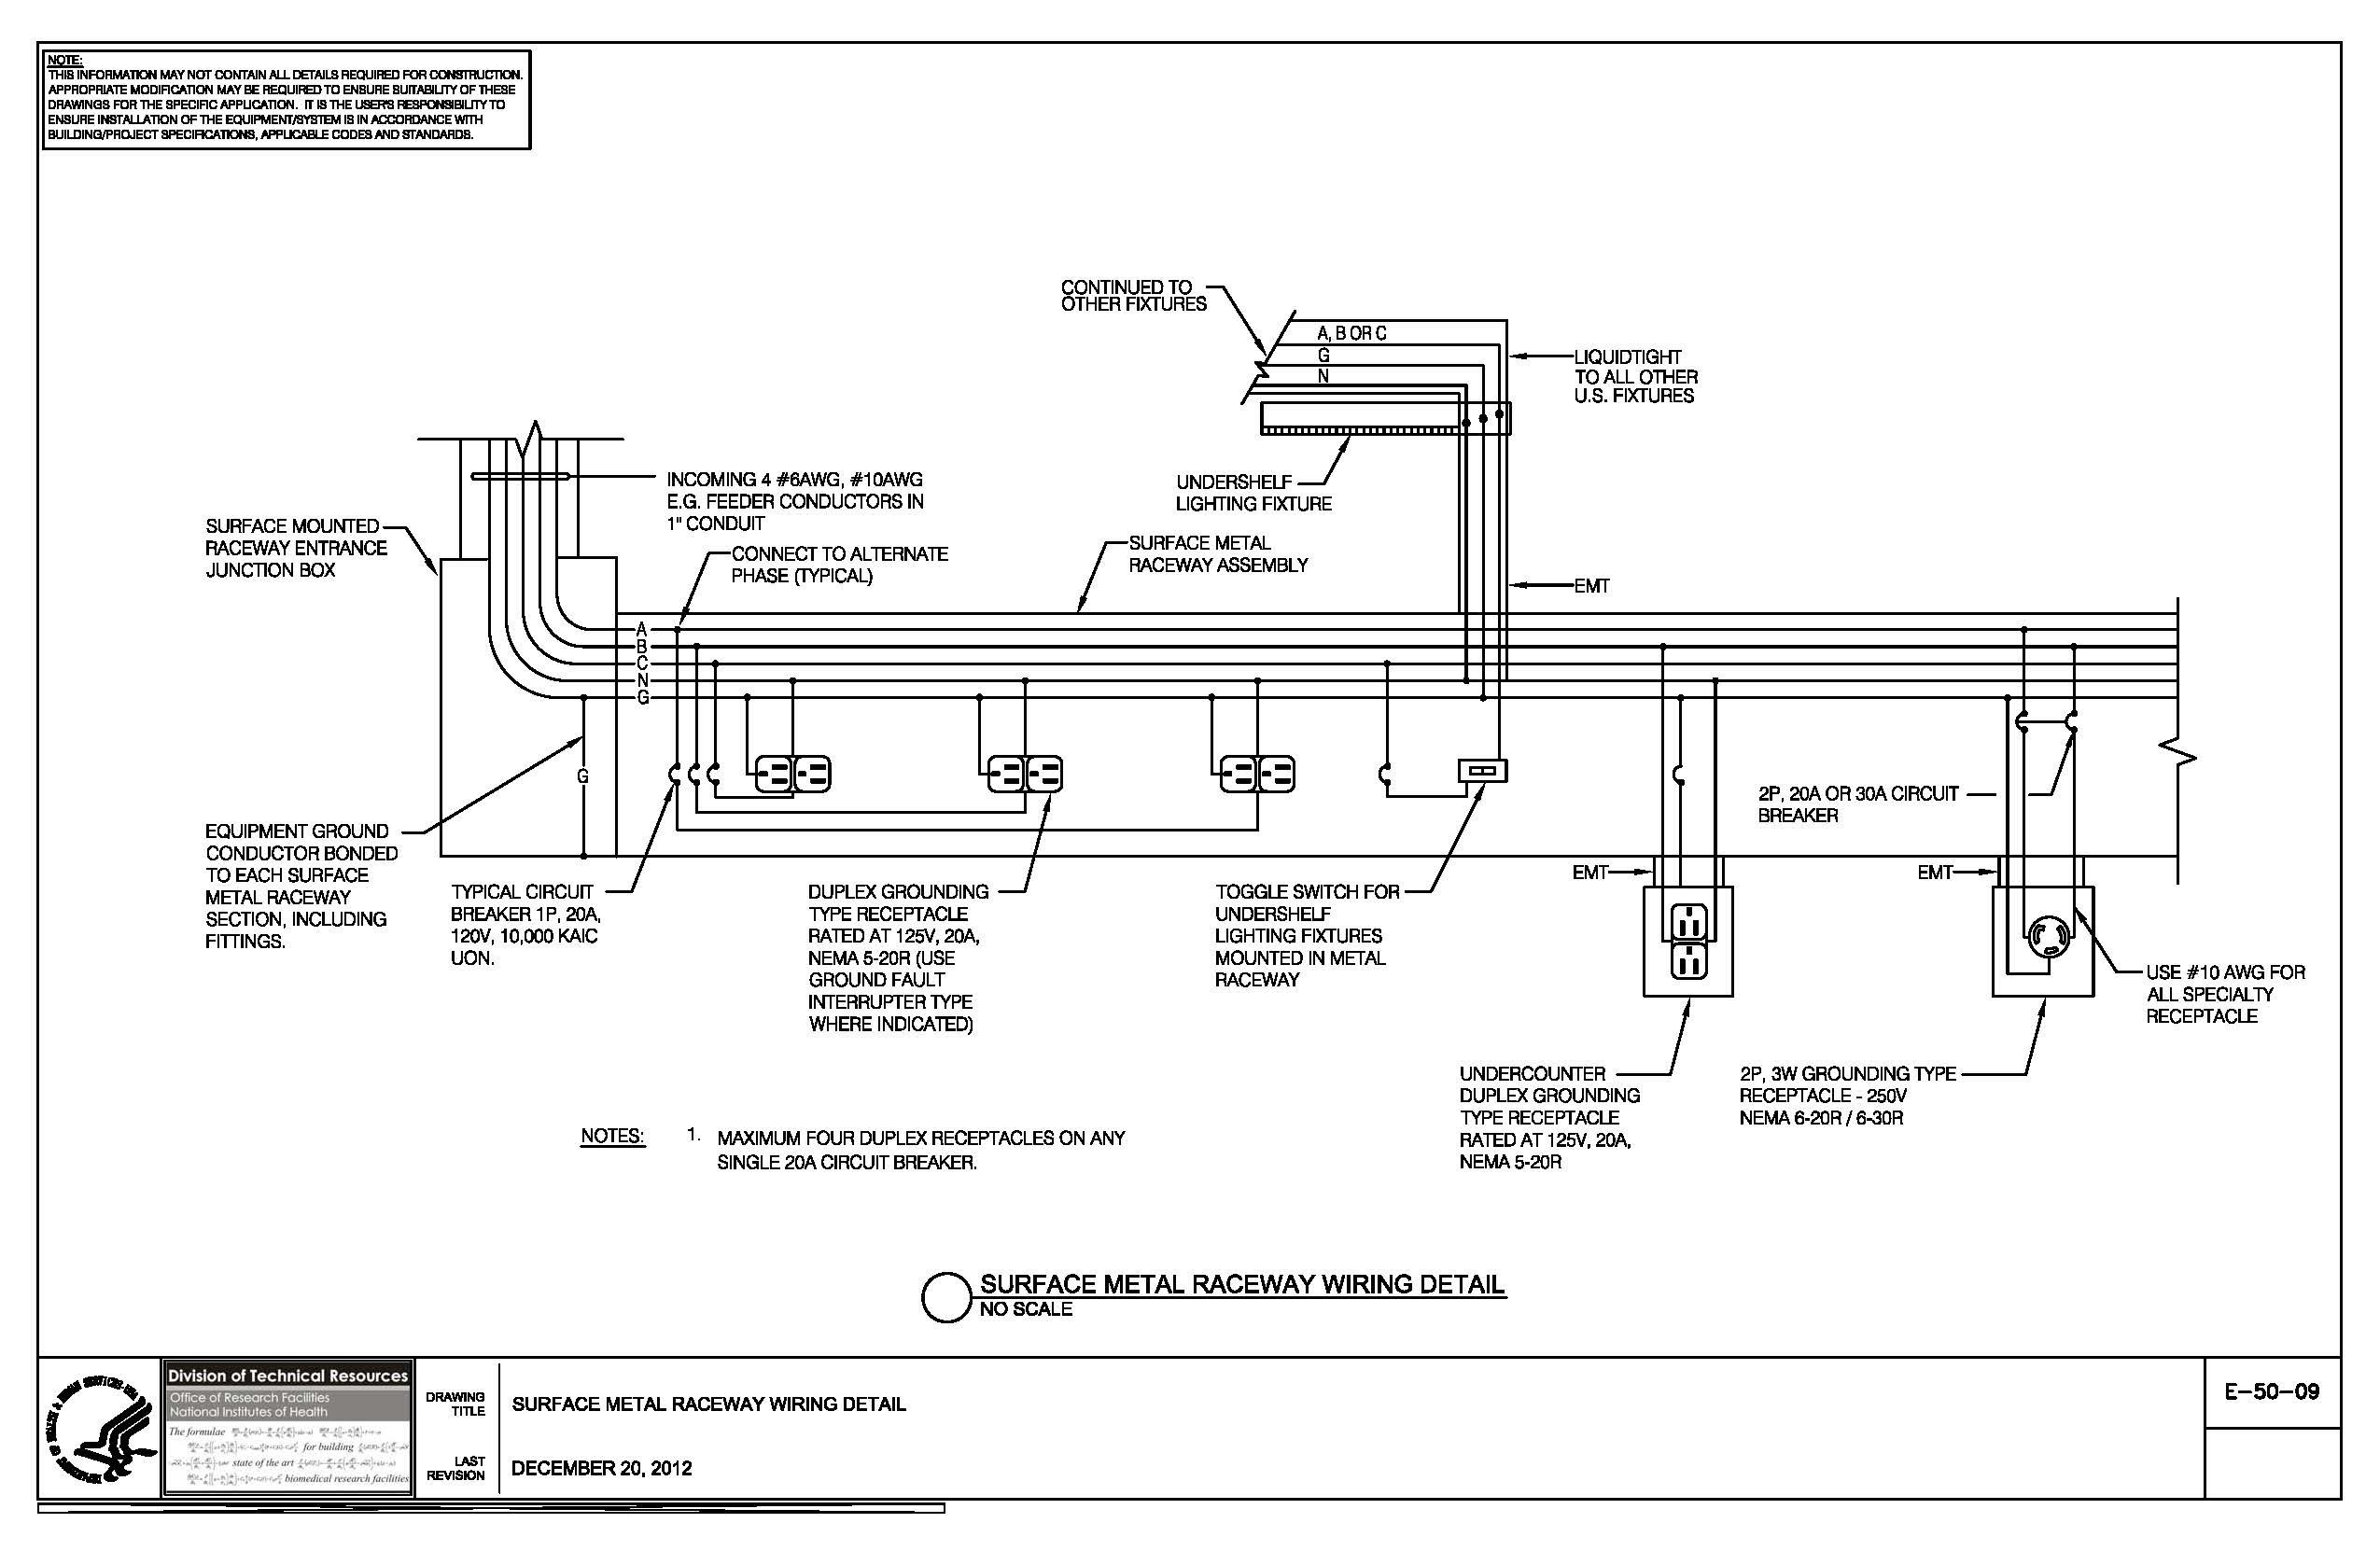 edwards transformer 599 wiring diagram Collection-Swimming Pool Wiring Diagram Gallery Edwards Transformer 599 Wiring Diagram Collection 9-h